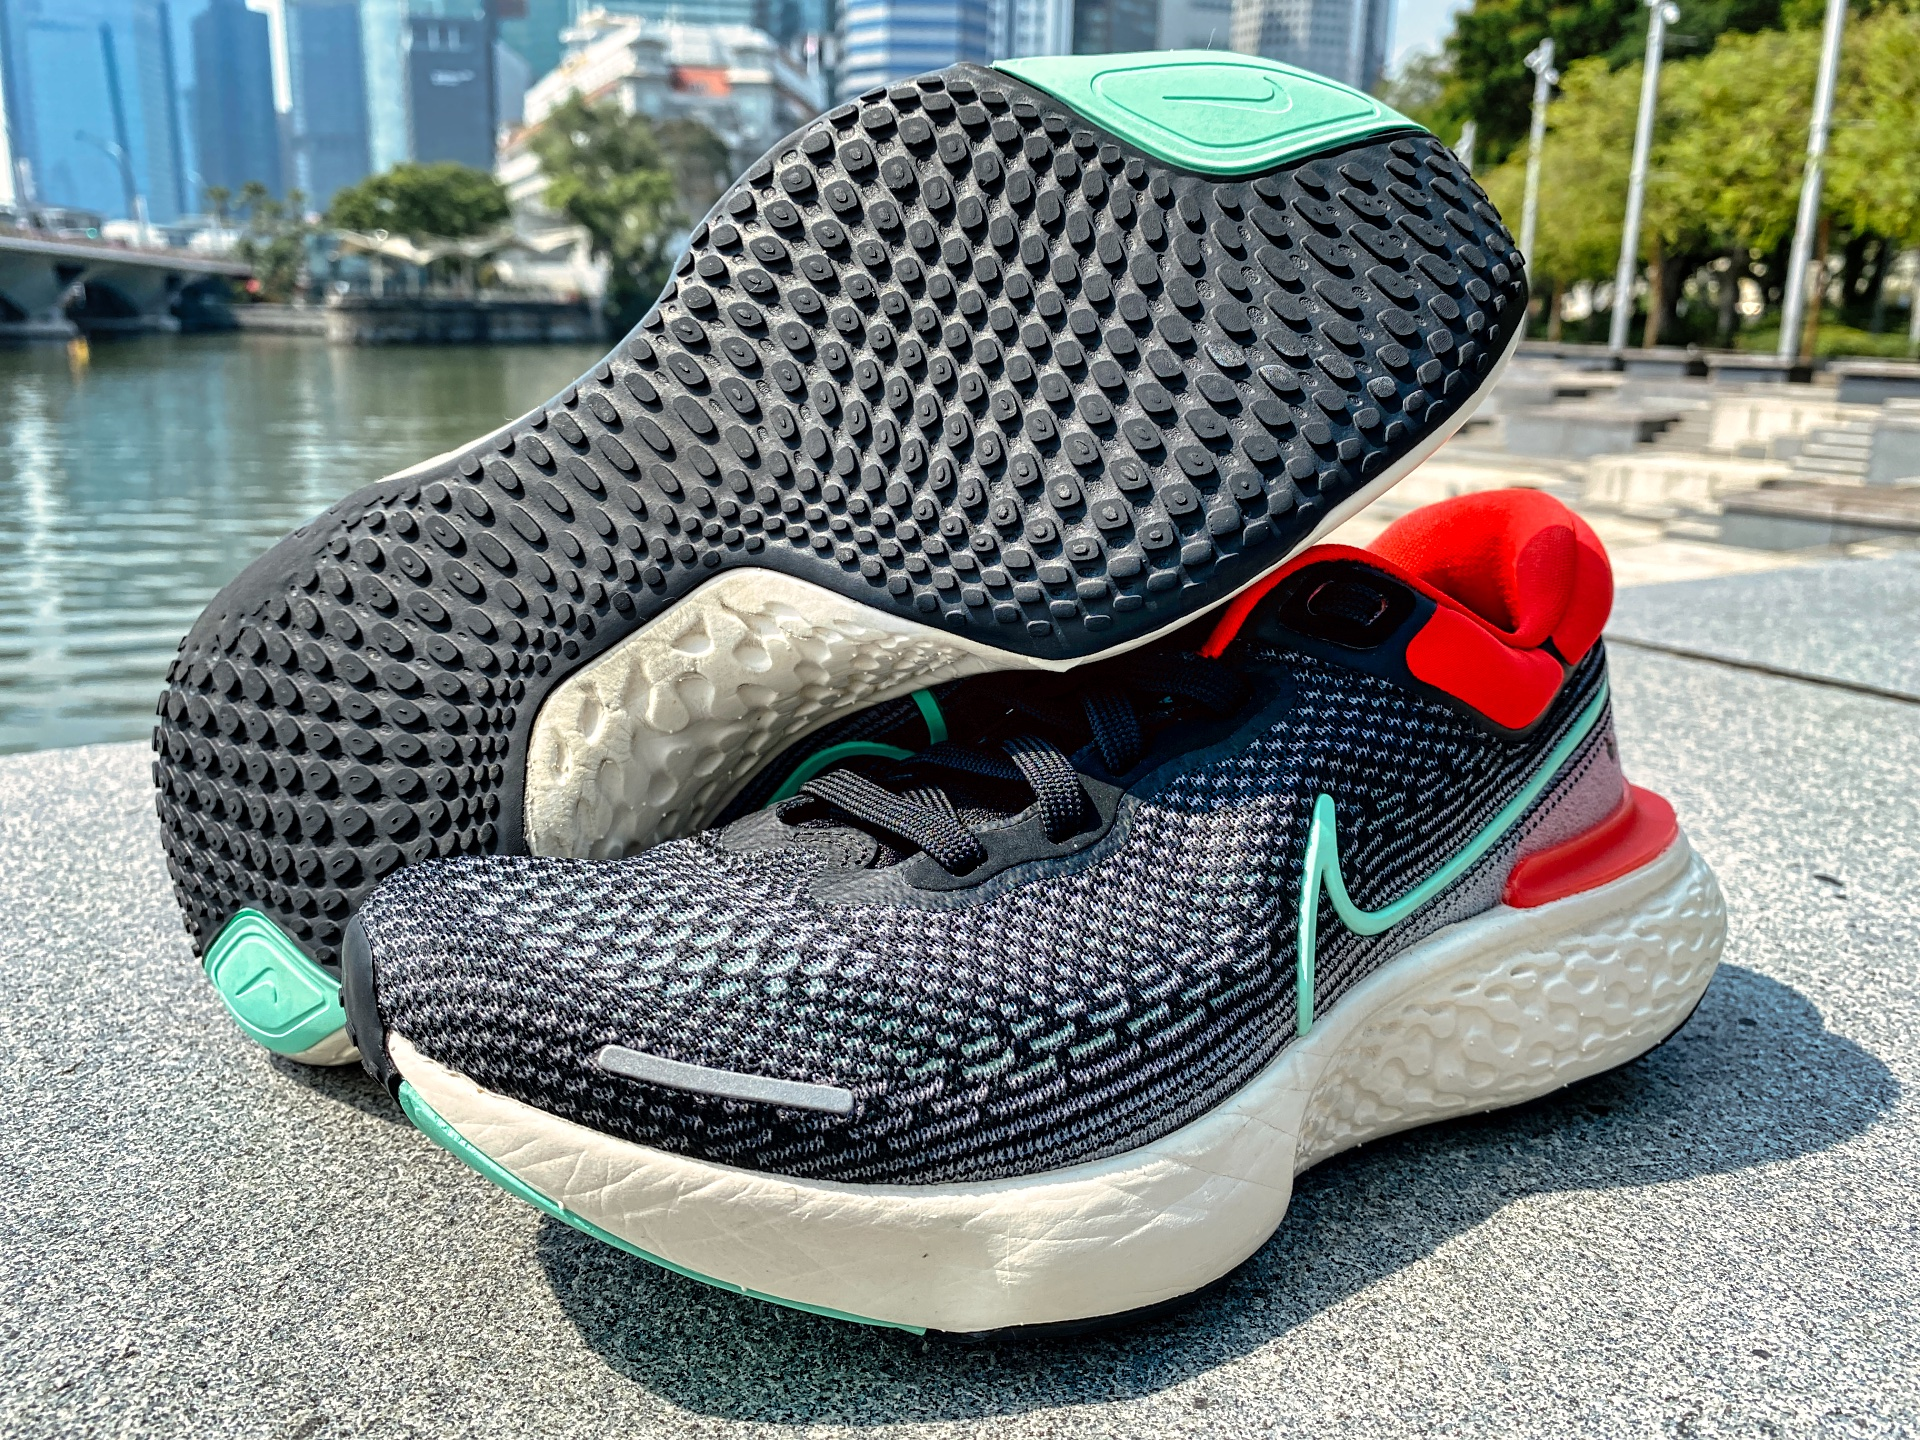 Nike ZoomX Invincible Run - pic 2412